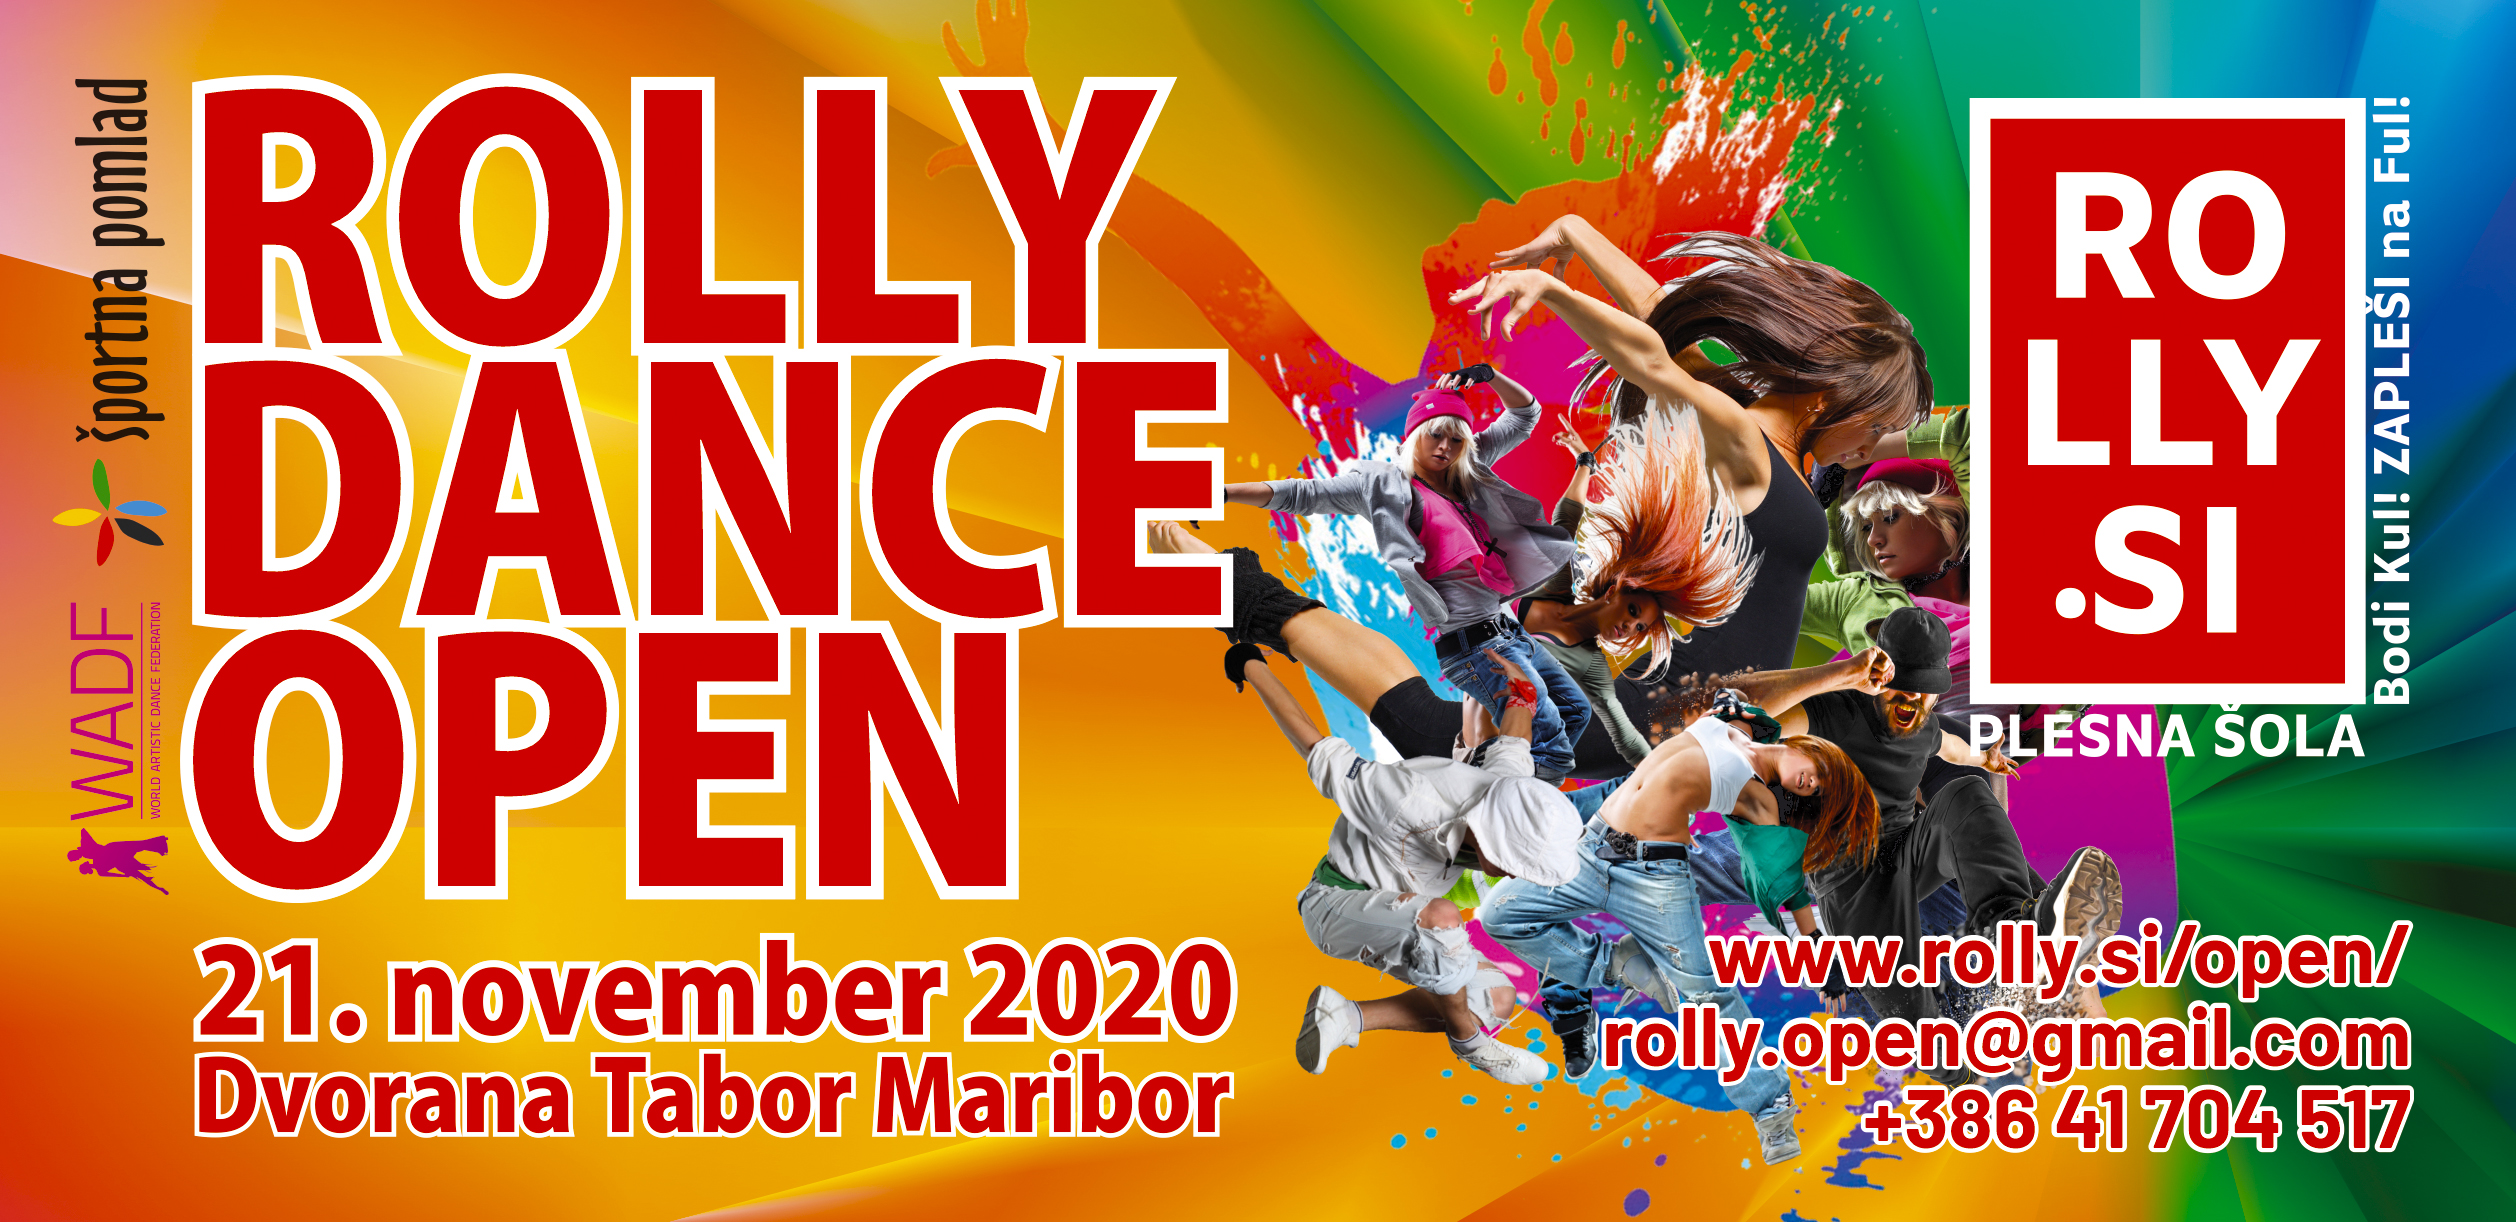 Rolly Dance Open 2020: NOV DATUM